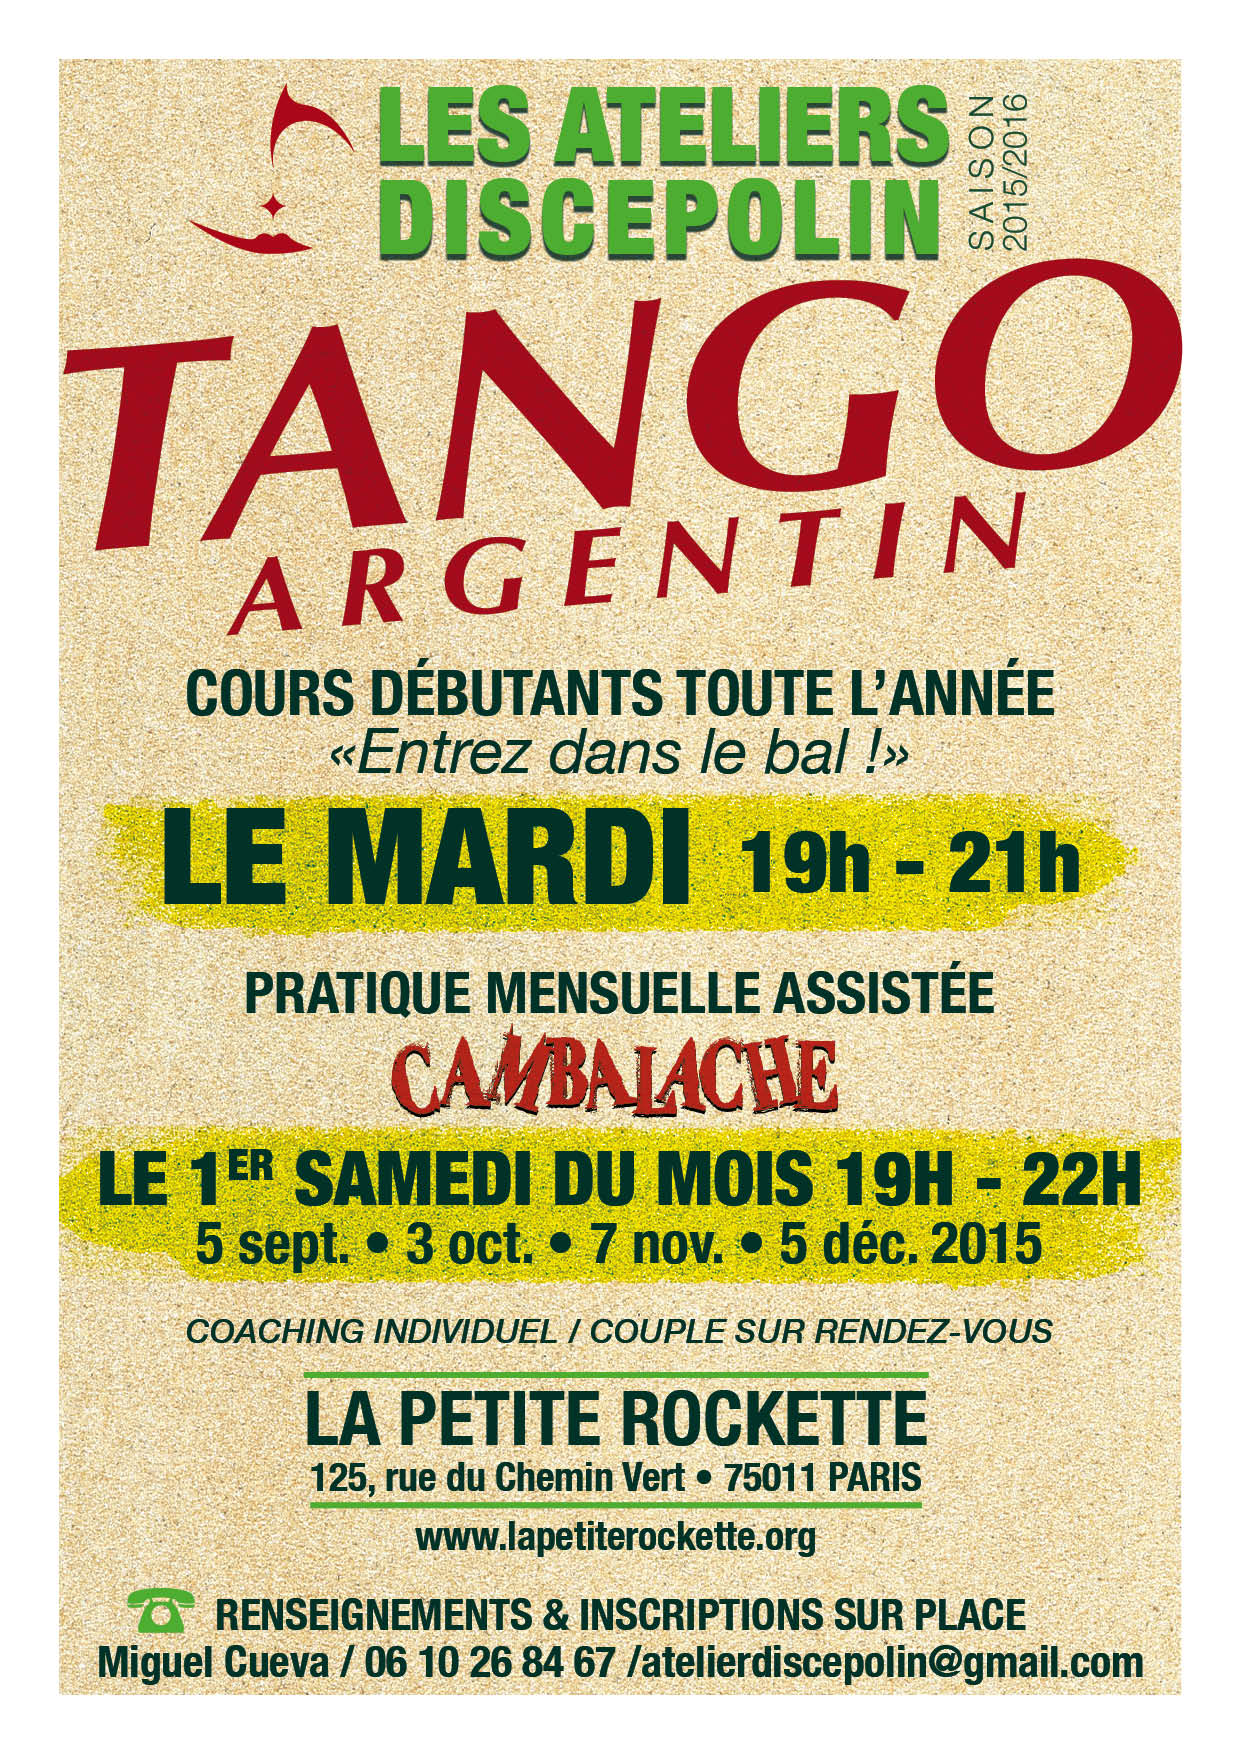 FLYER_COURS_TANGO-1